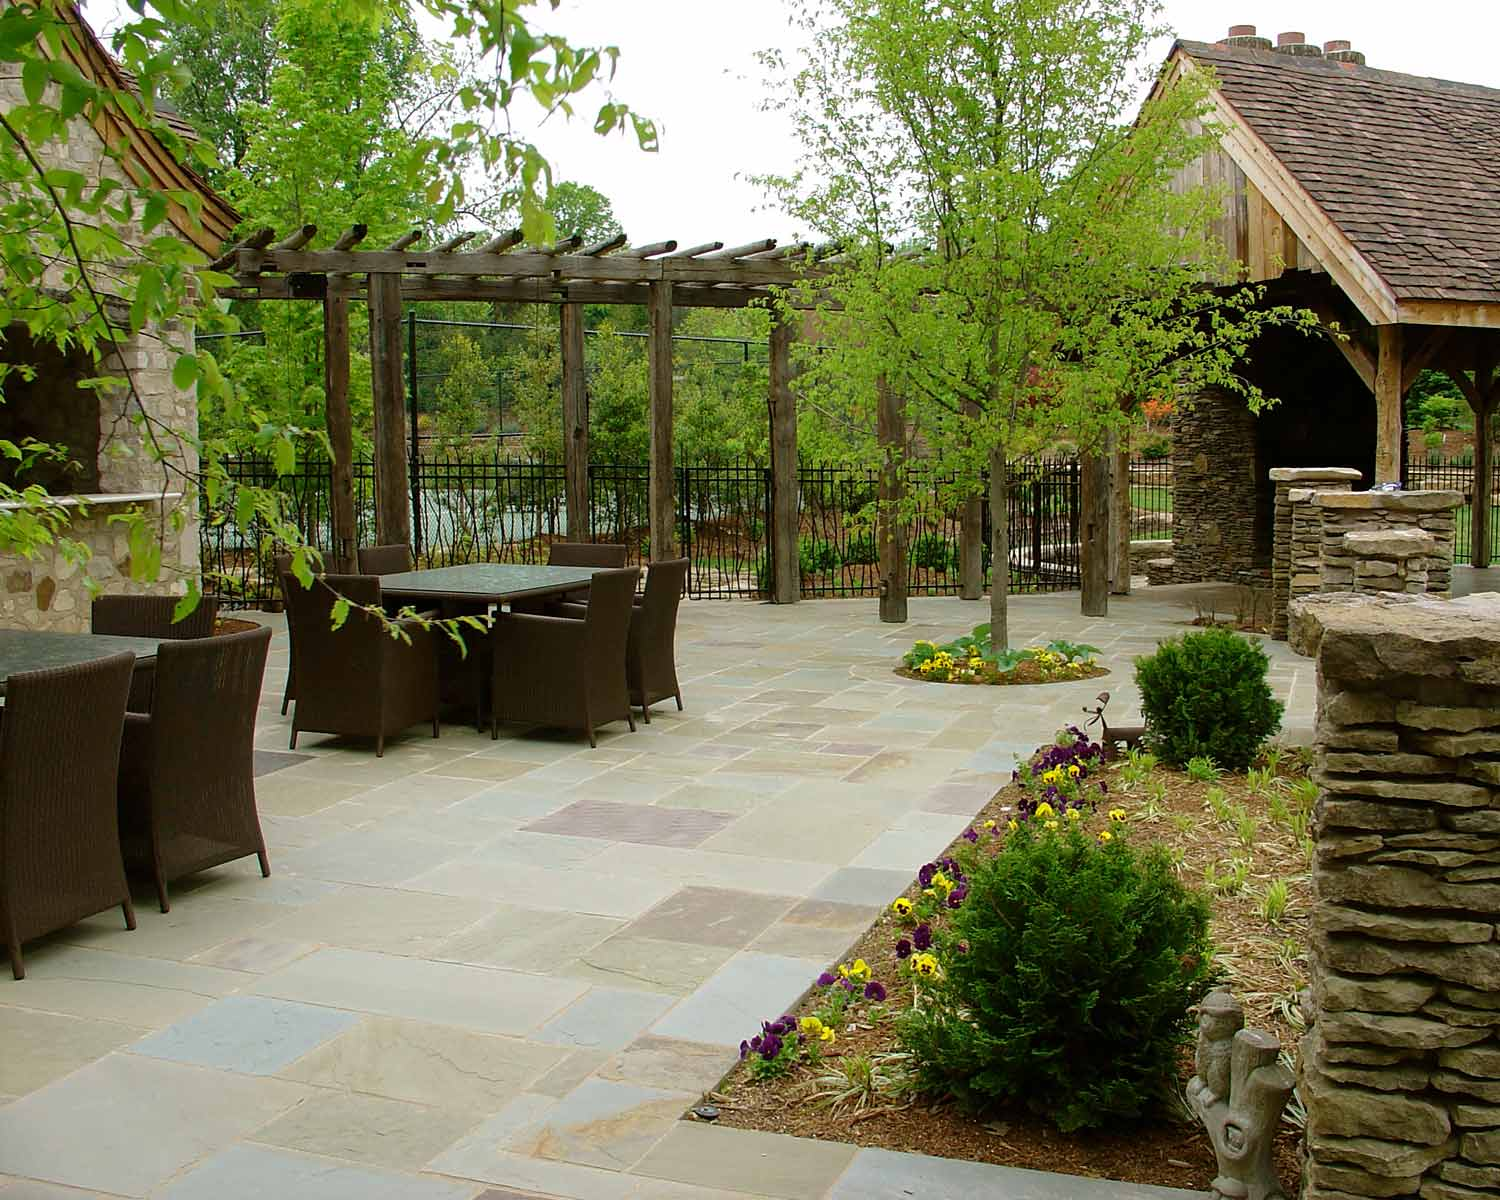 Patio Outdoor Dining Landscape